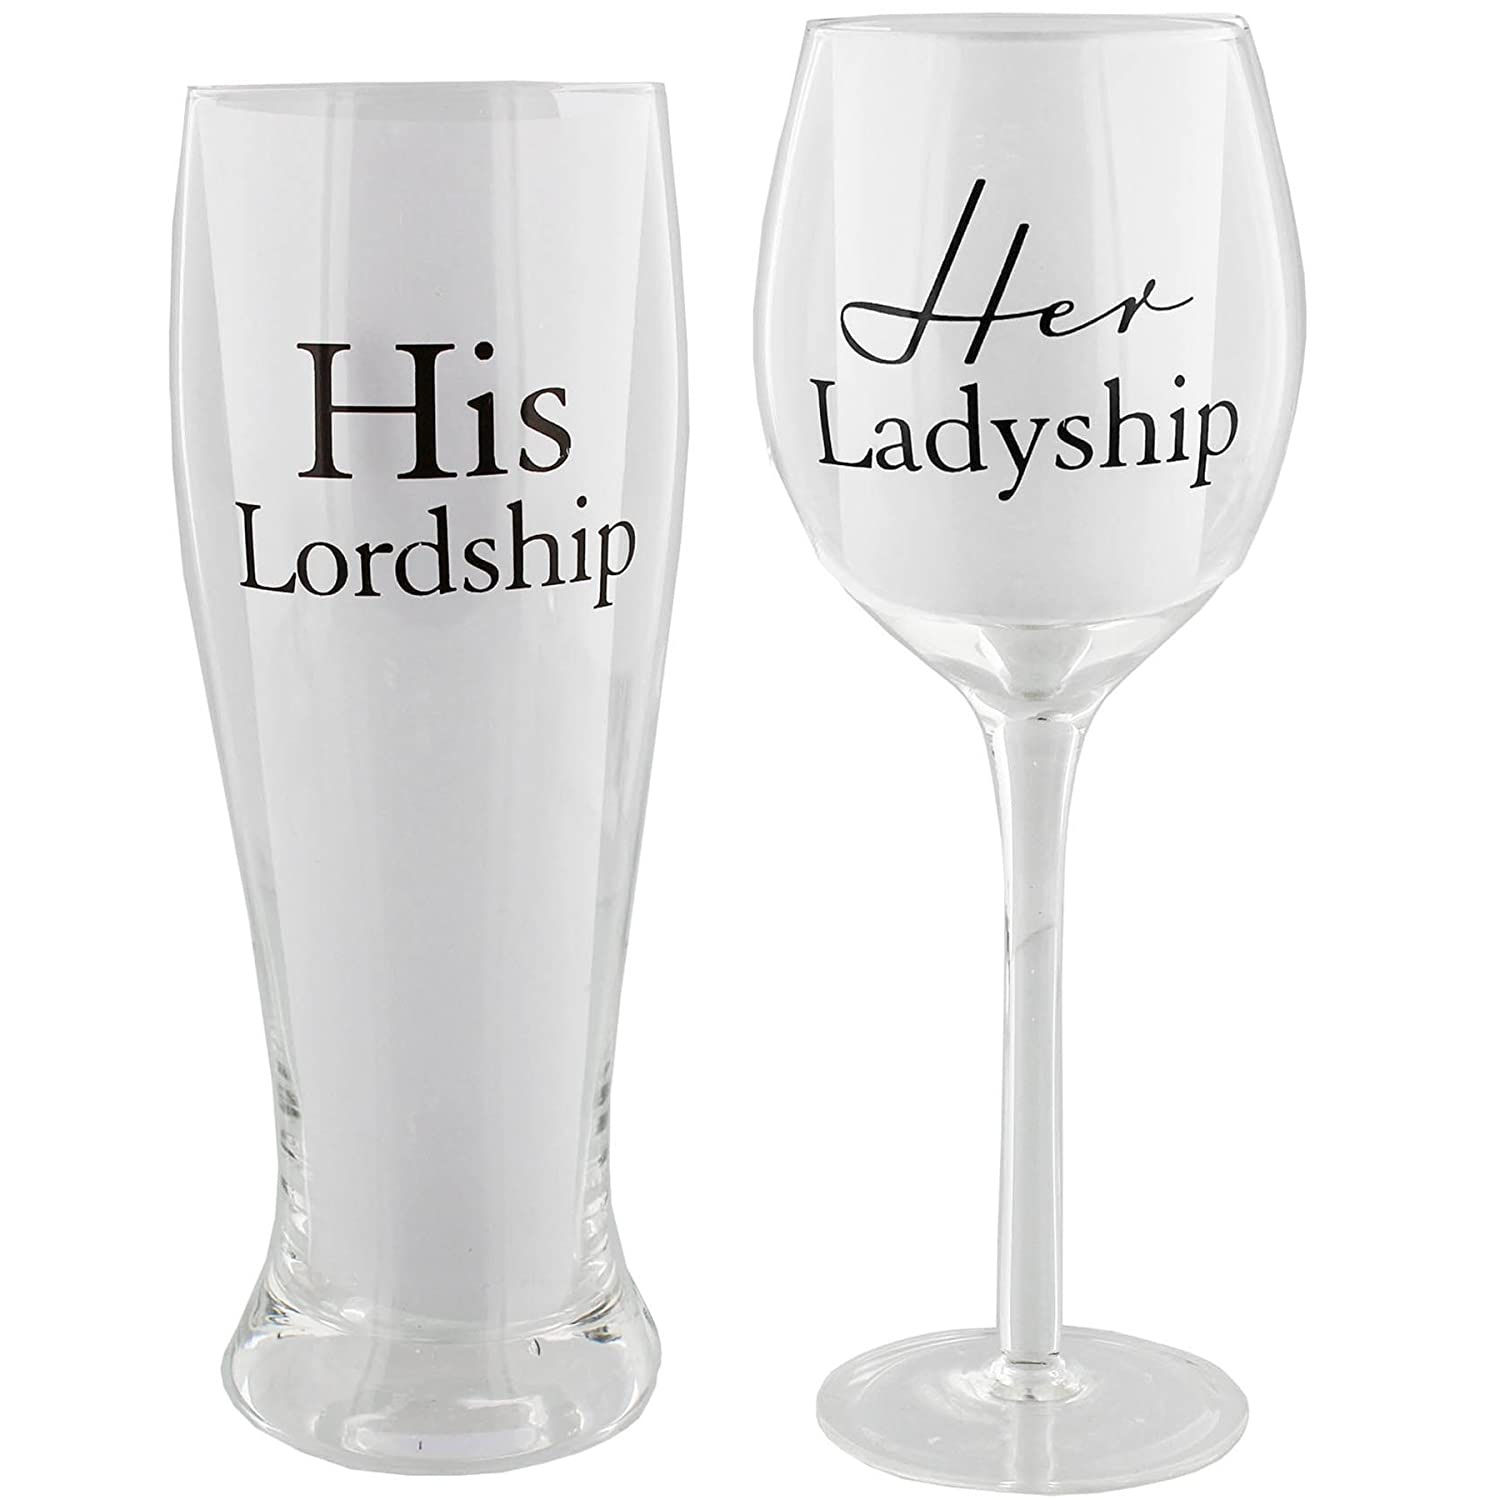 Her Ladyship Wine Glass and His Lordship Pint Glass XWG531